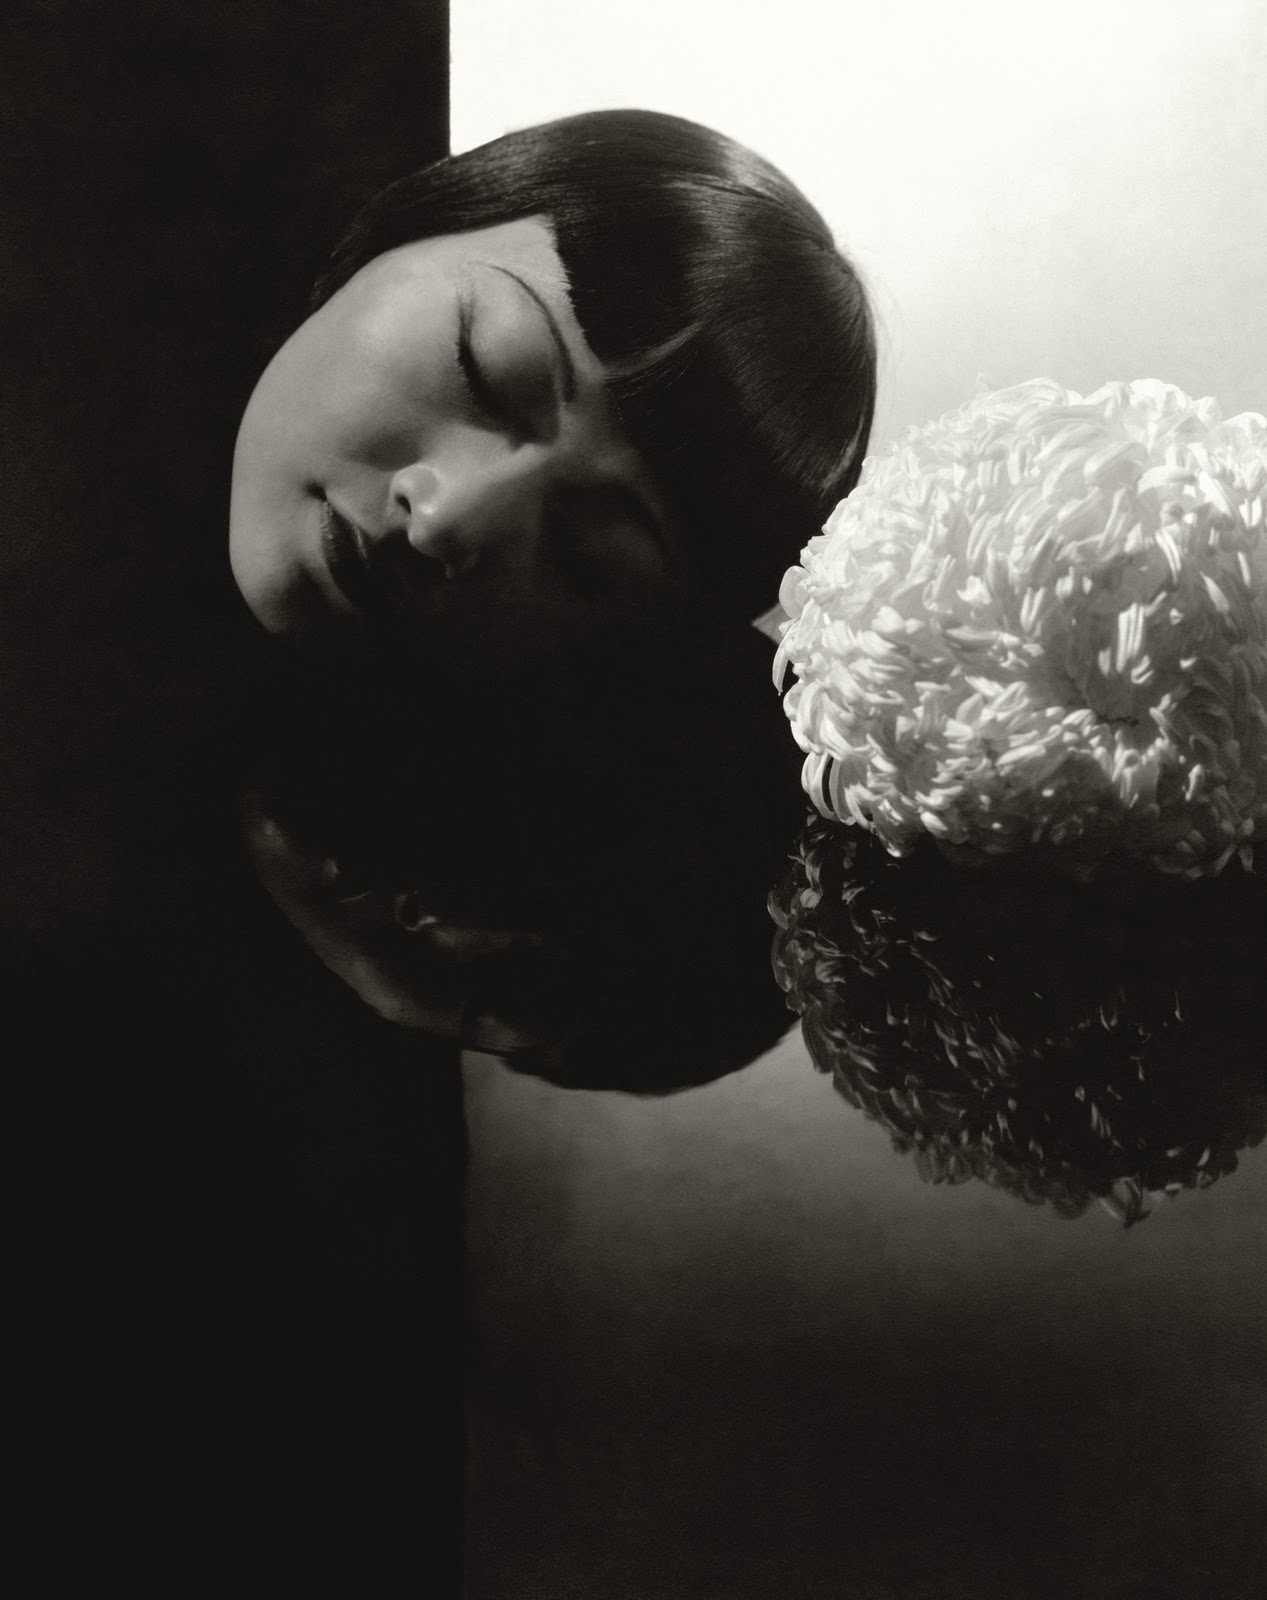 Anna May Wong, Edward Steichen. Fotografía | Photography